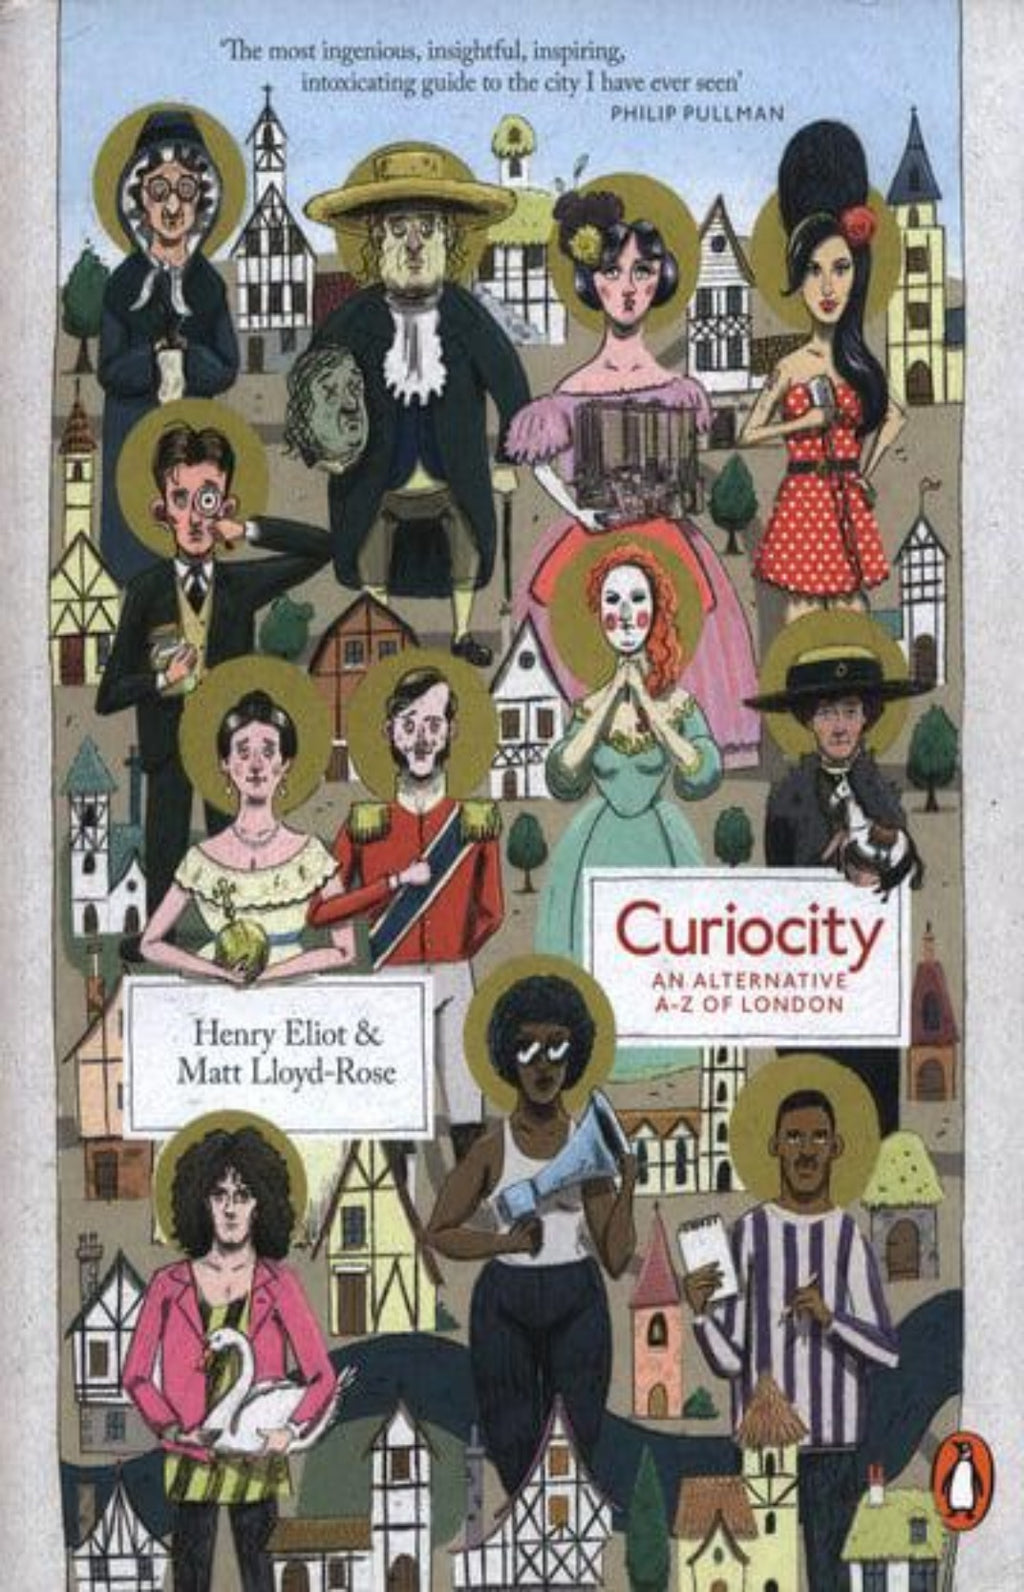 Curiocity : An Alternative A-Z of London